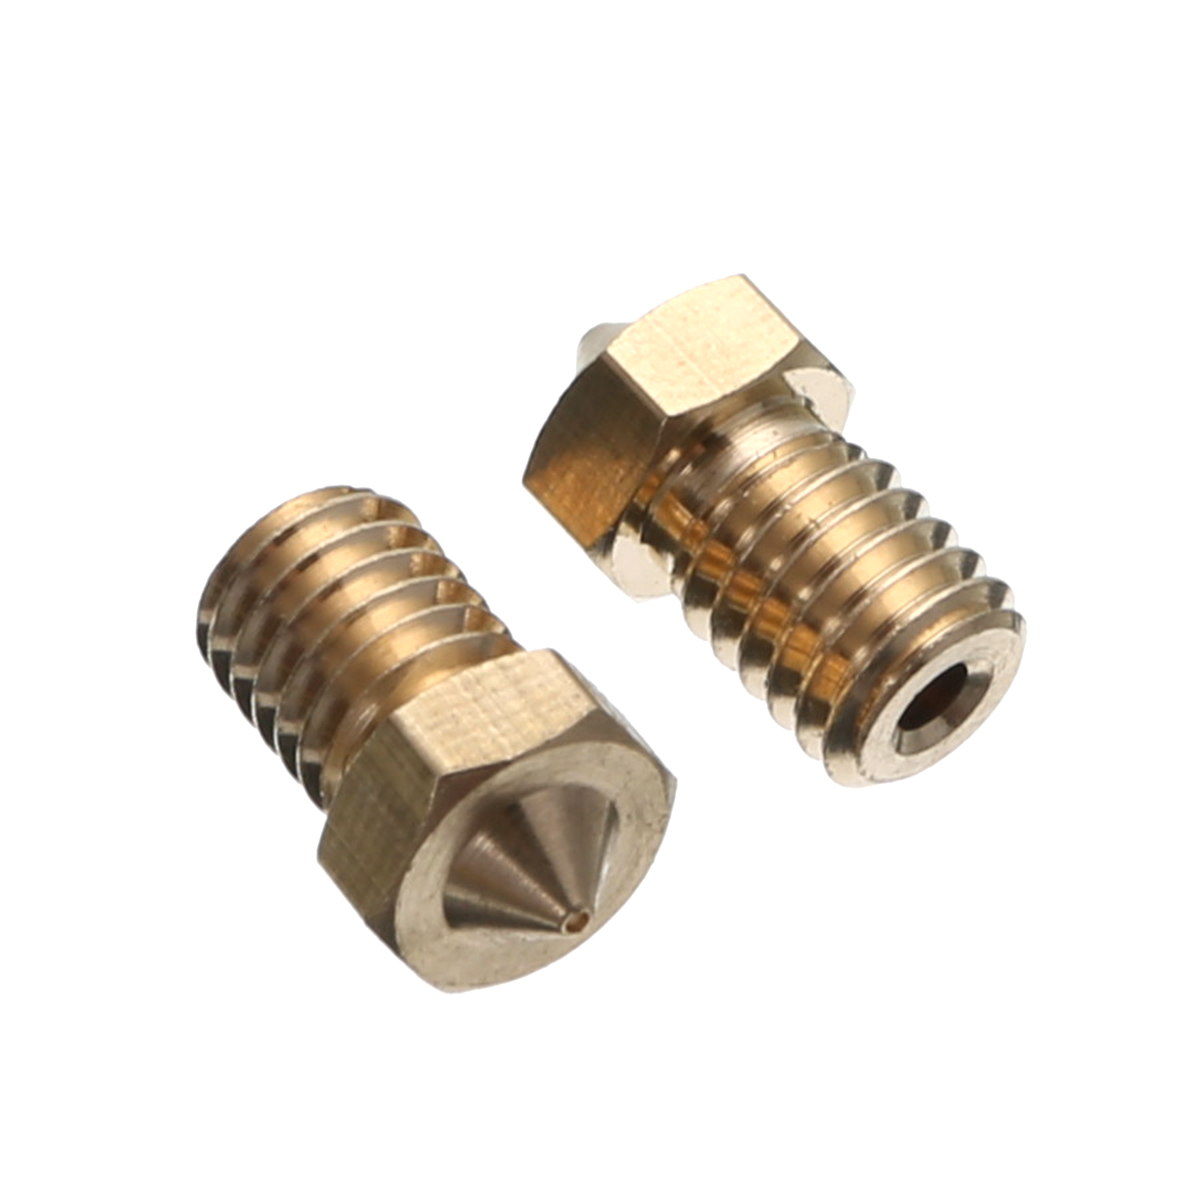 Mayitr 9pcs 1.75mm Filament Extruder Nozzle E3D Printer Nozzle Set for E3D V6 J-Head&MK8 Makerbot 3D Printer Part